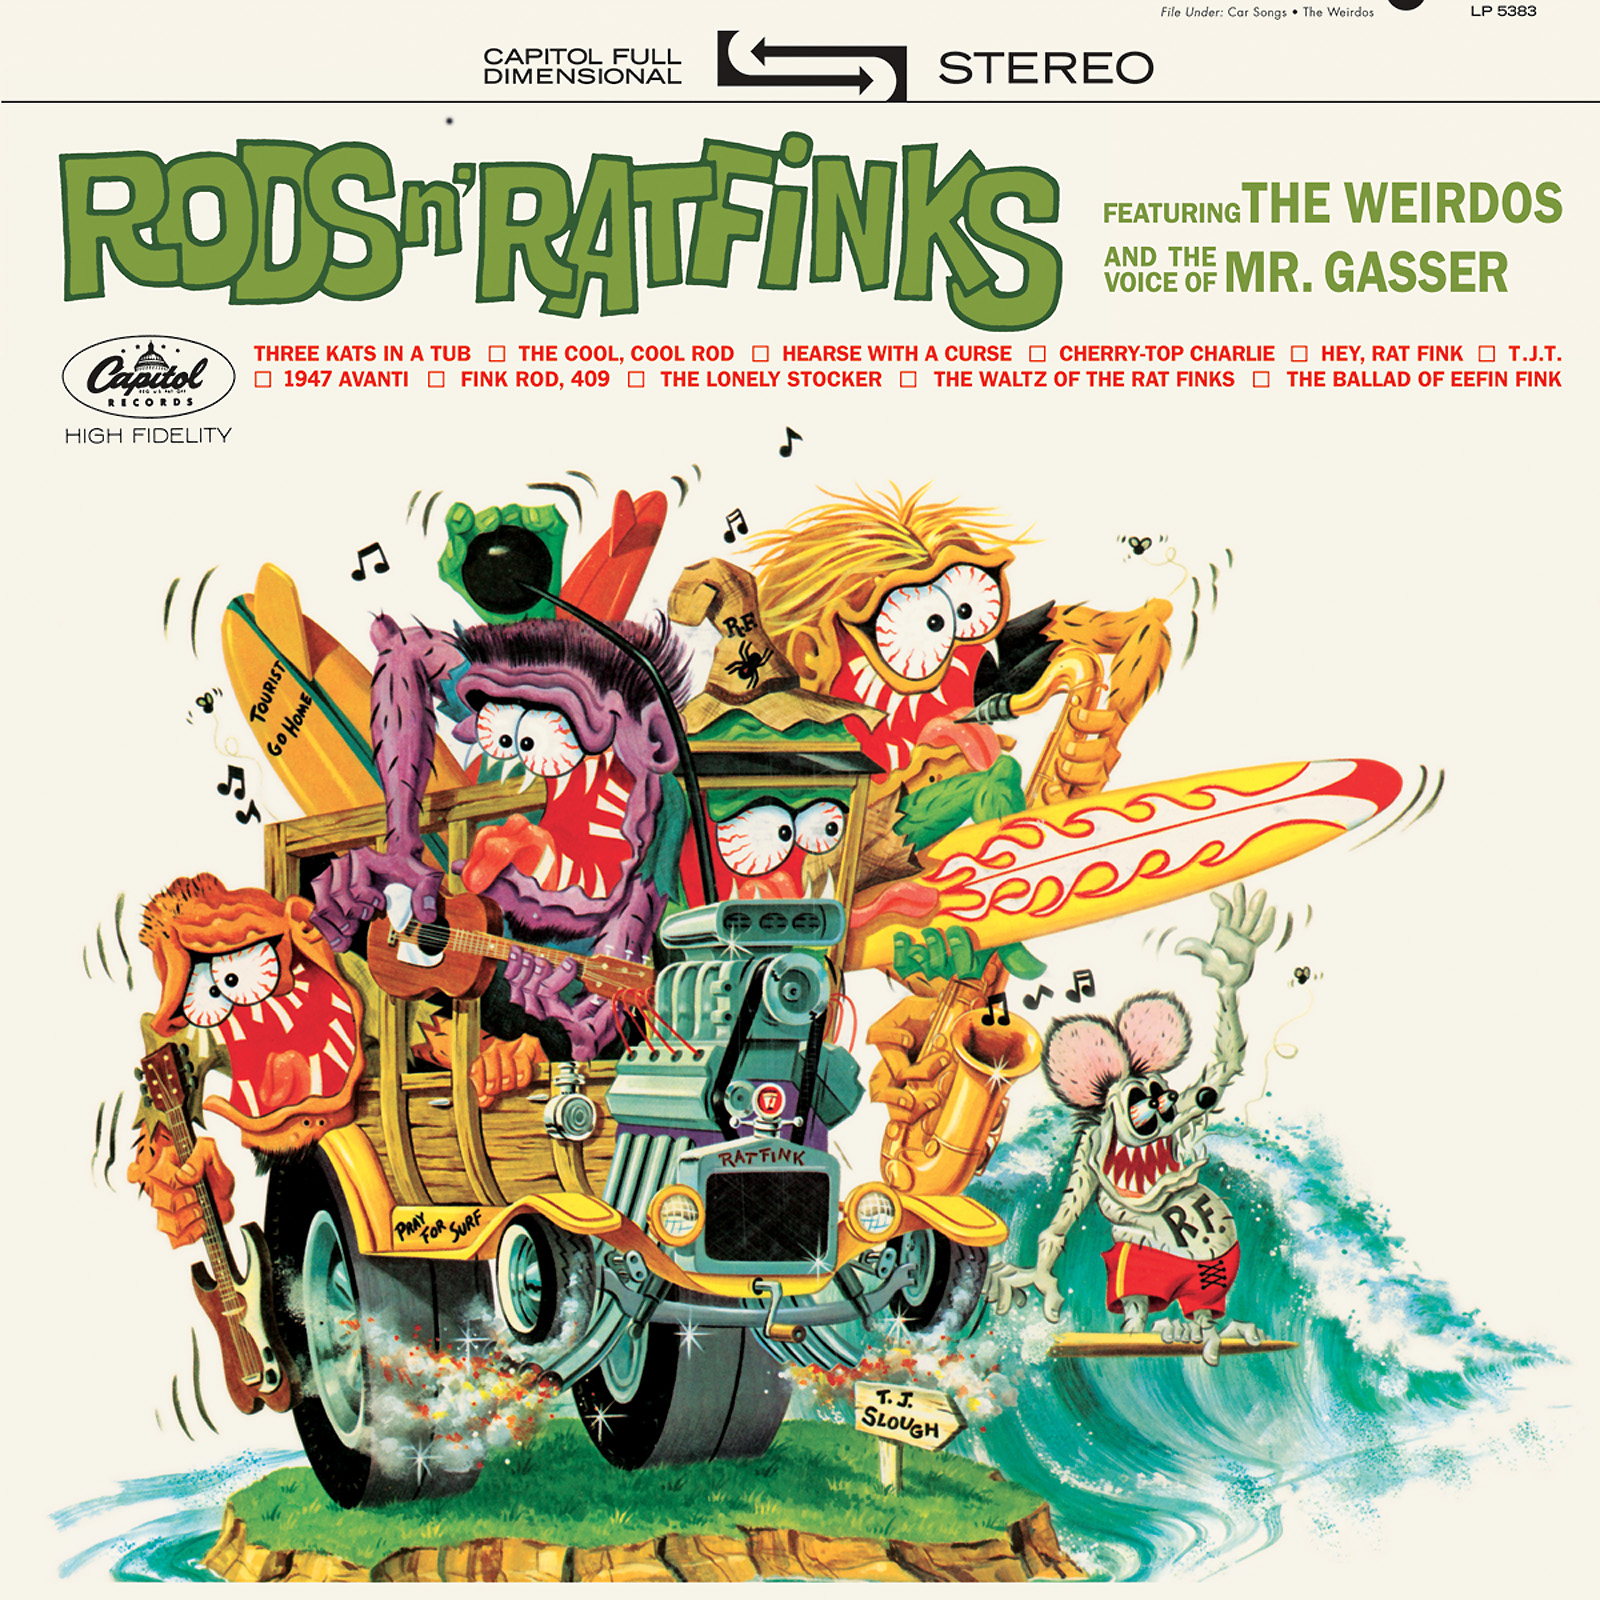 Mr. Gasser & the Weirdos - Rods 'n Ratfinks CD -BLACK FRIDAY- Limited Edition